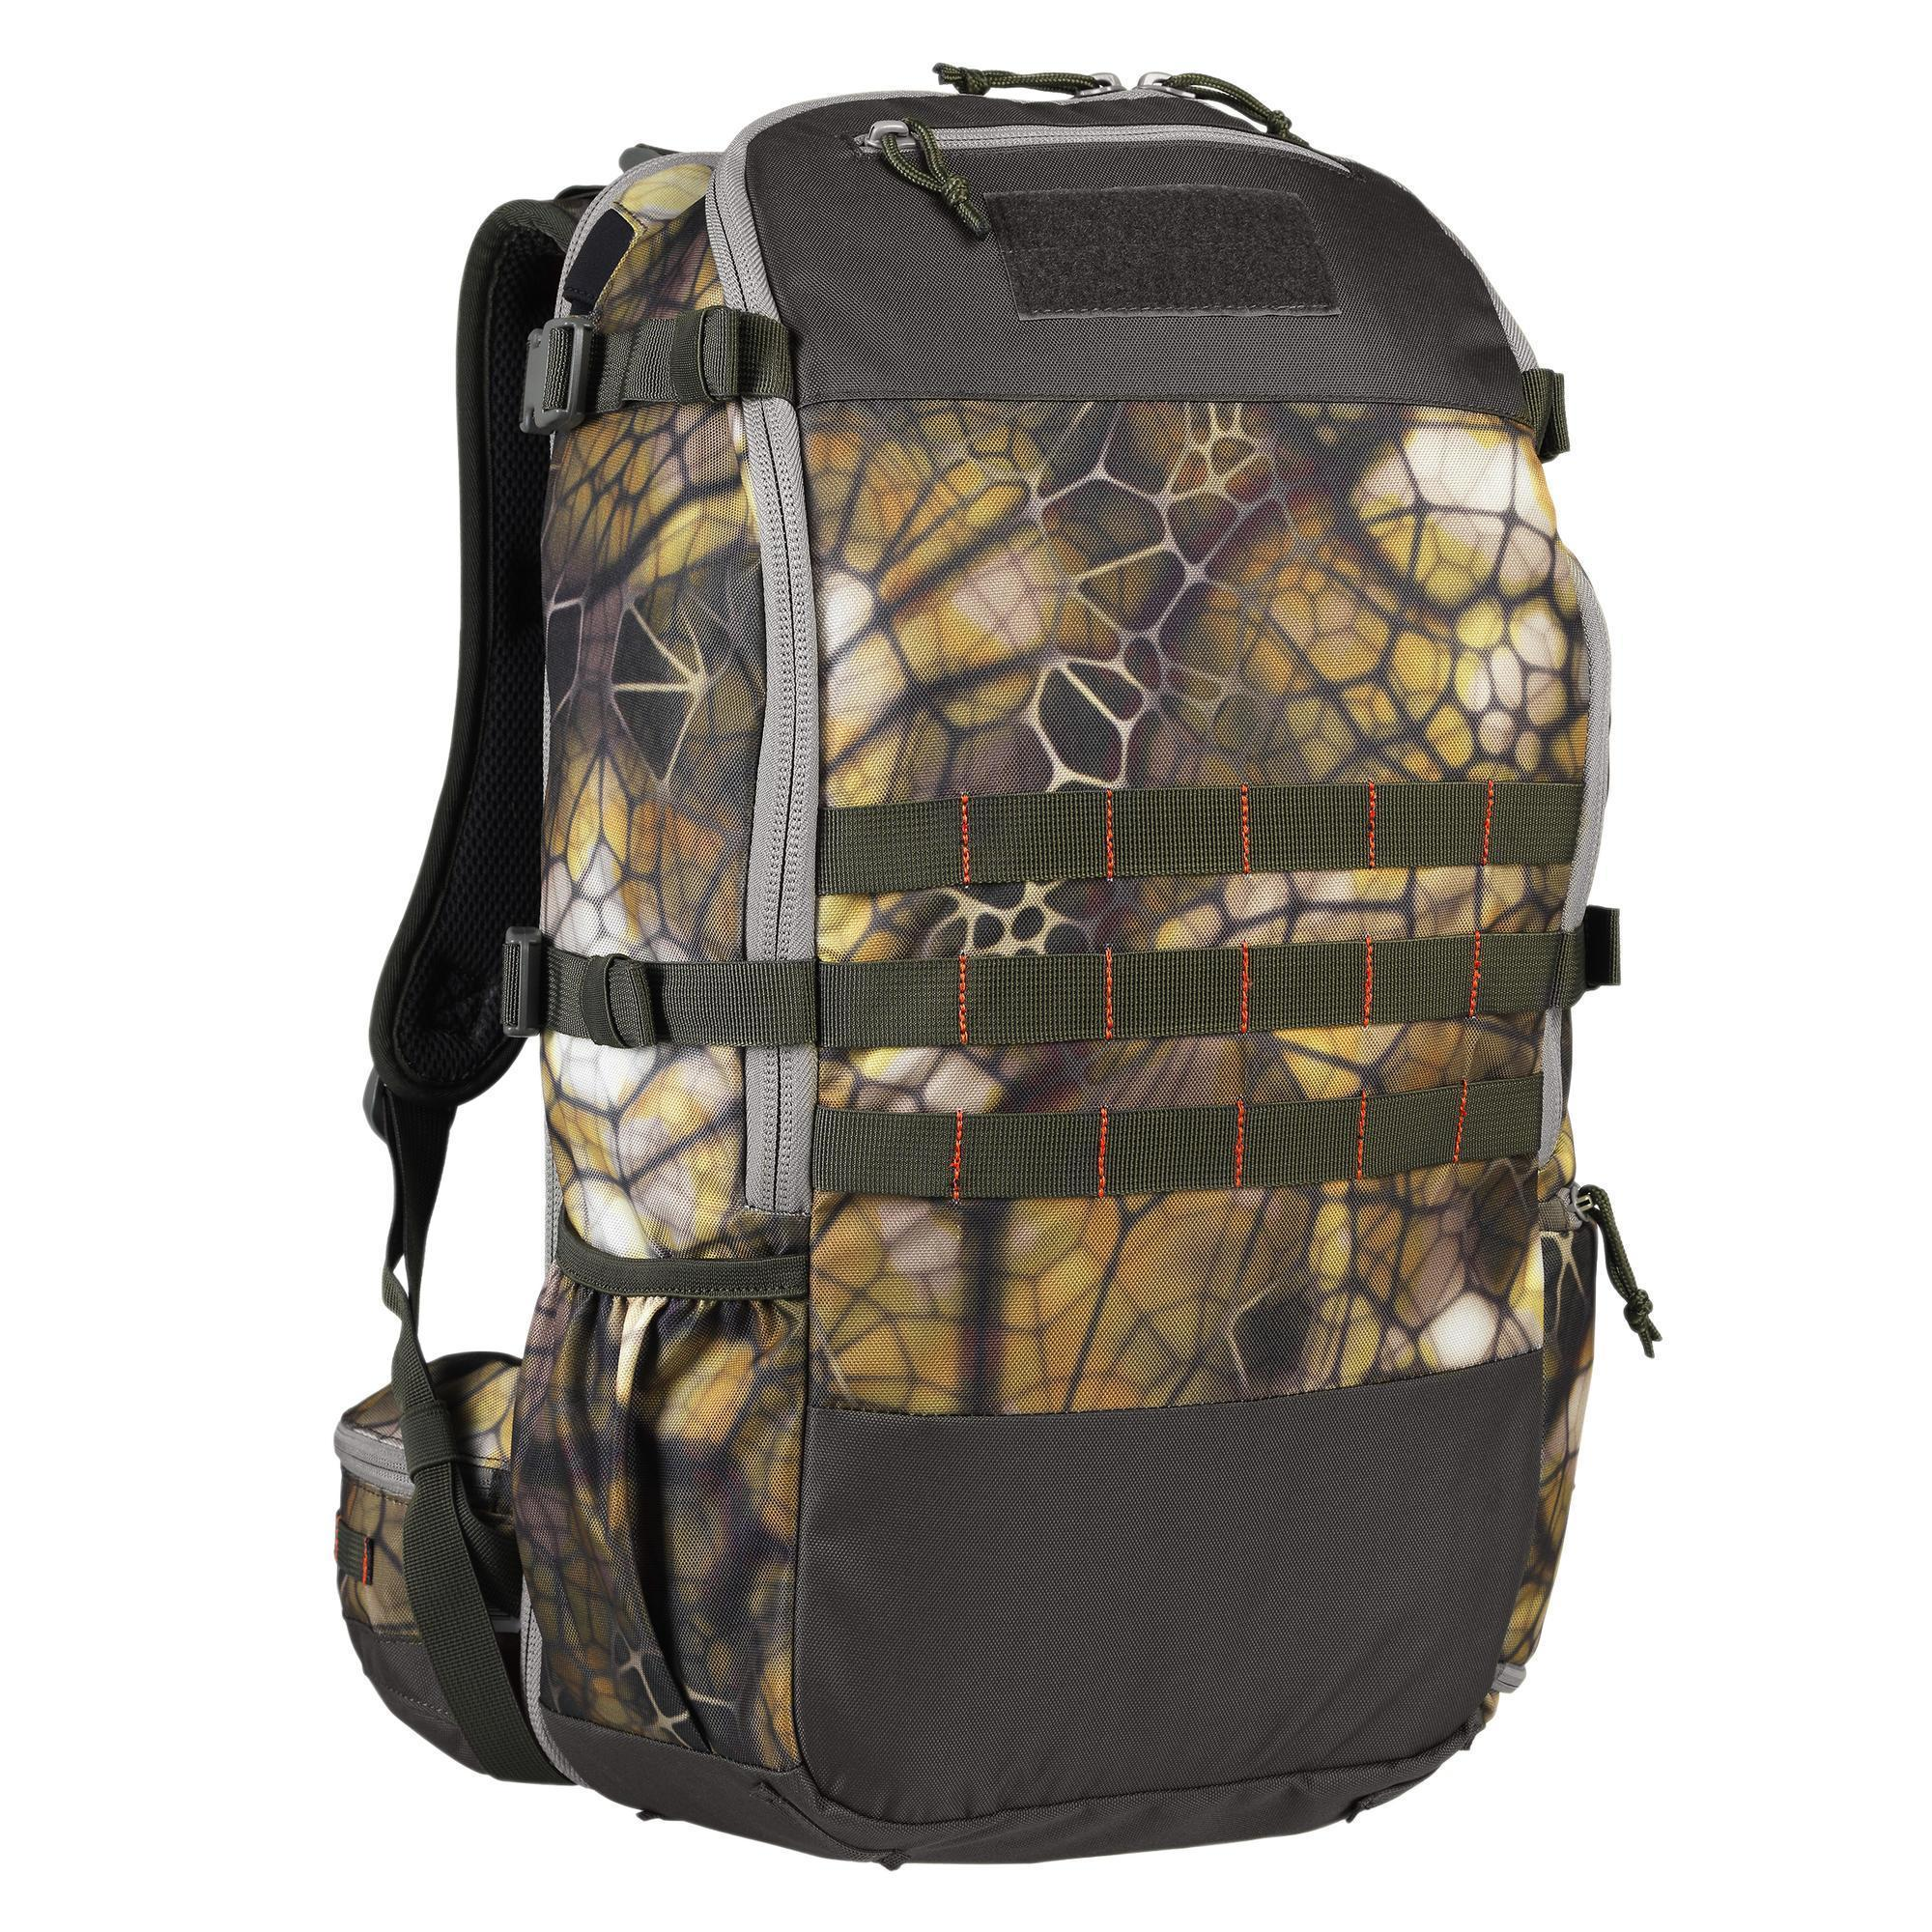 X-ACCESS COMPACT HUNTING BACKPACK 45 LITRE FURTIV CAMOUFLAGE | Solognac